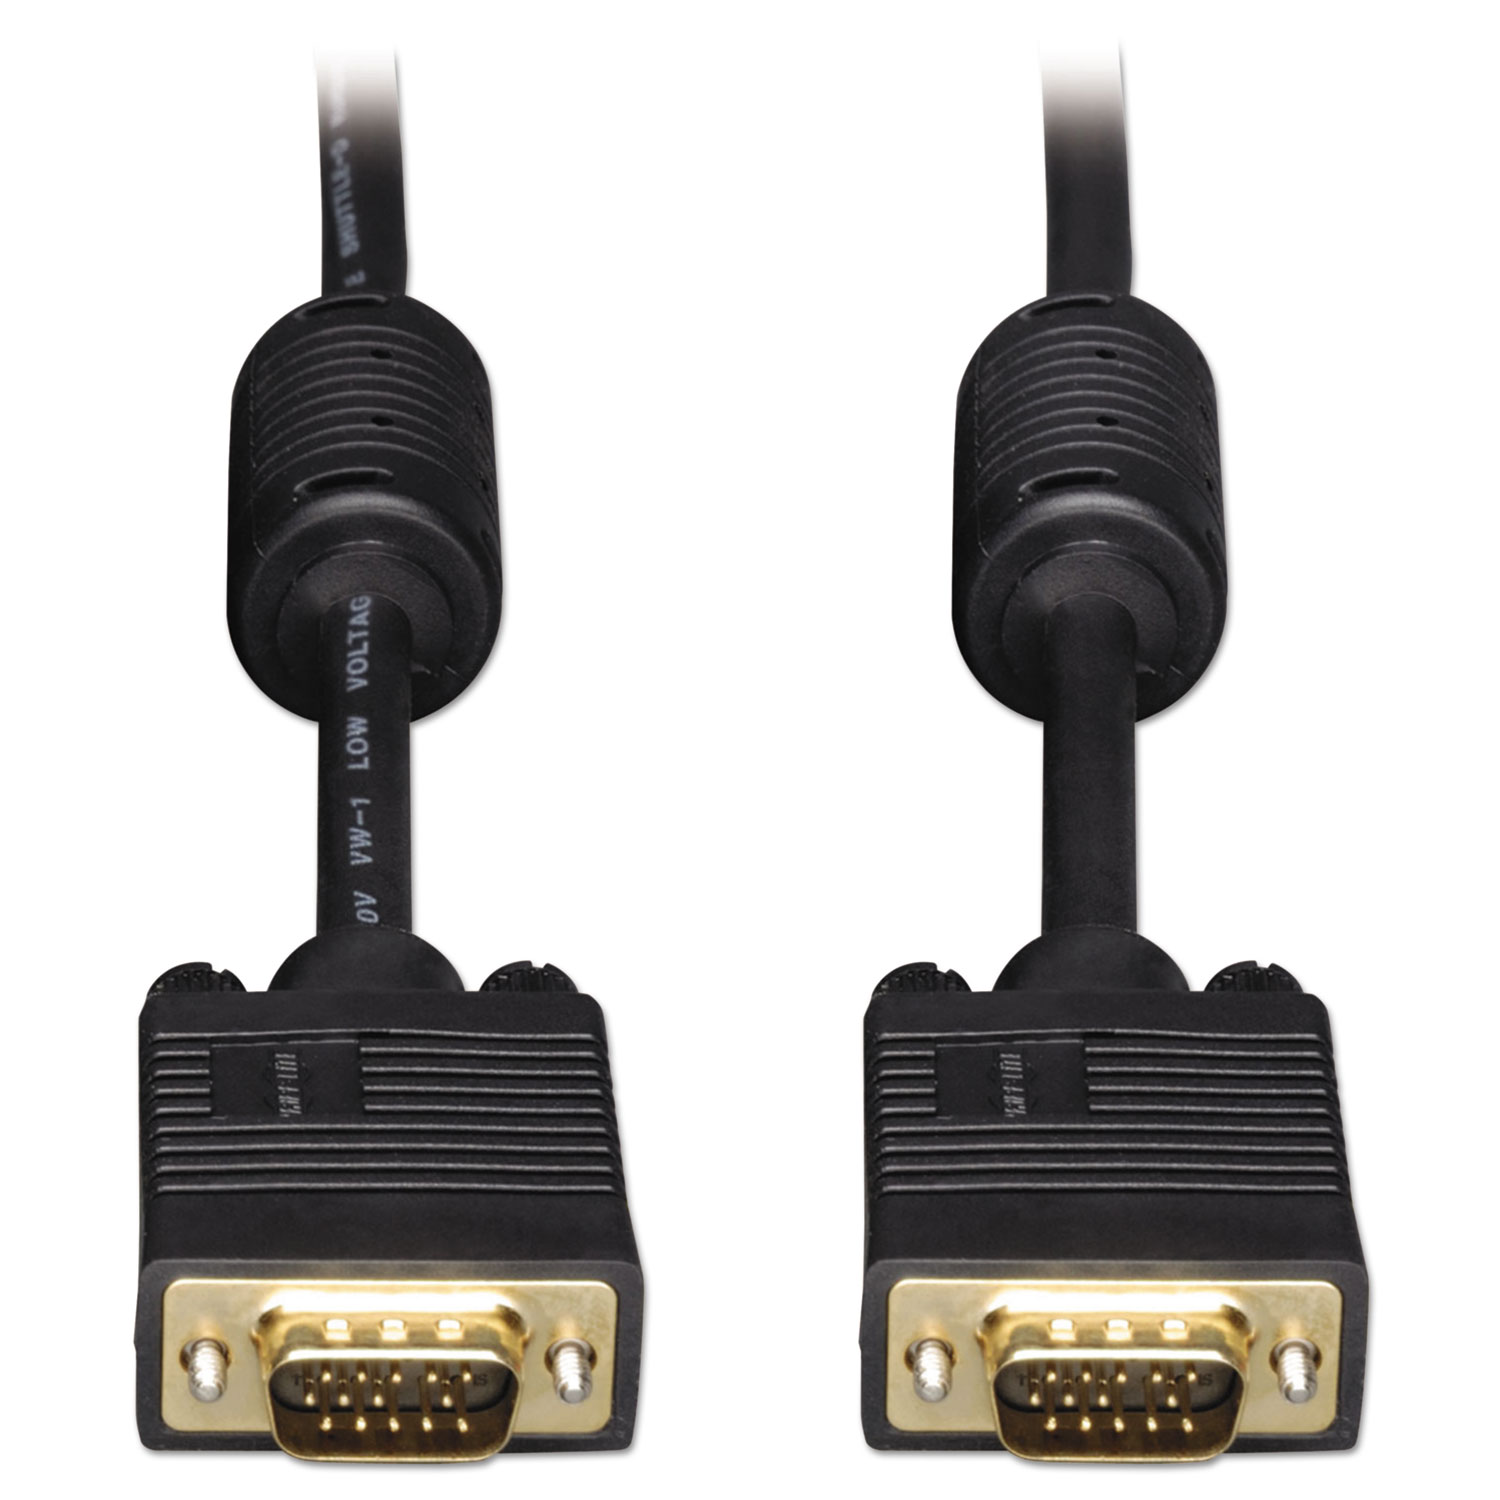 VGA Coaxial High-Resolution Monitor Cable with RGB Coaxial (HD15 M/M), 6 ft.